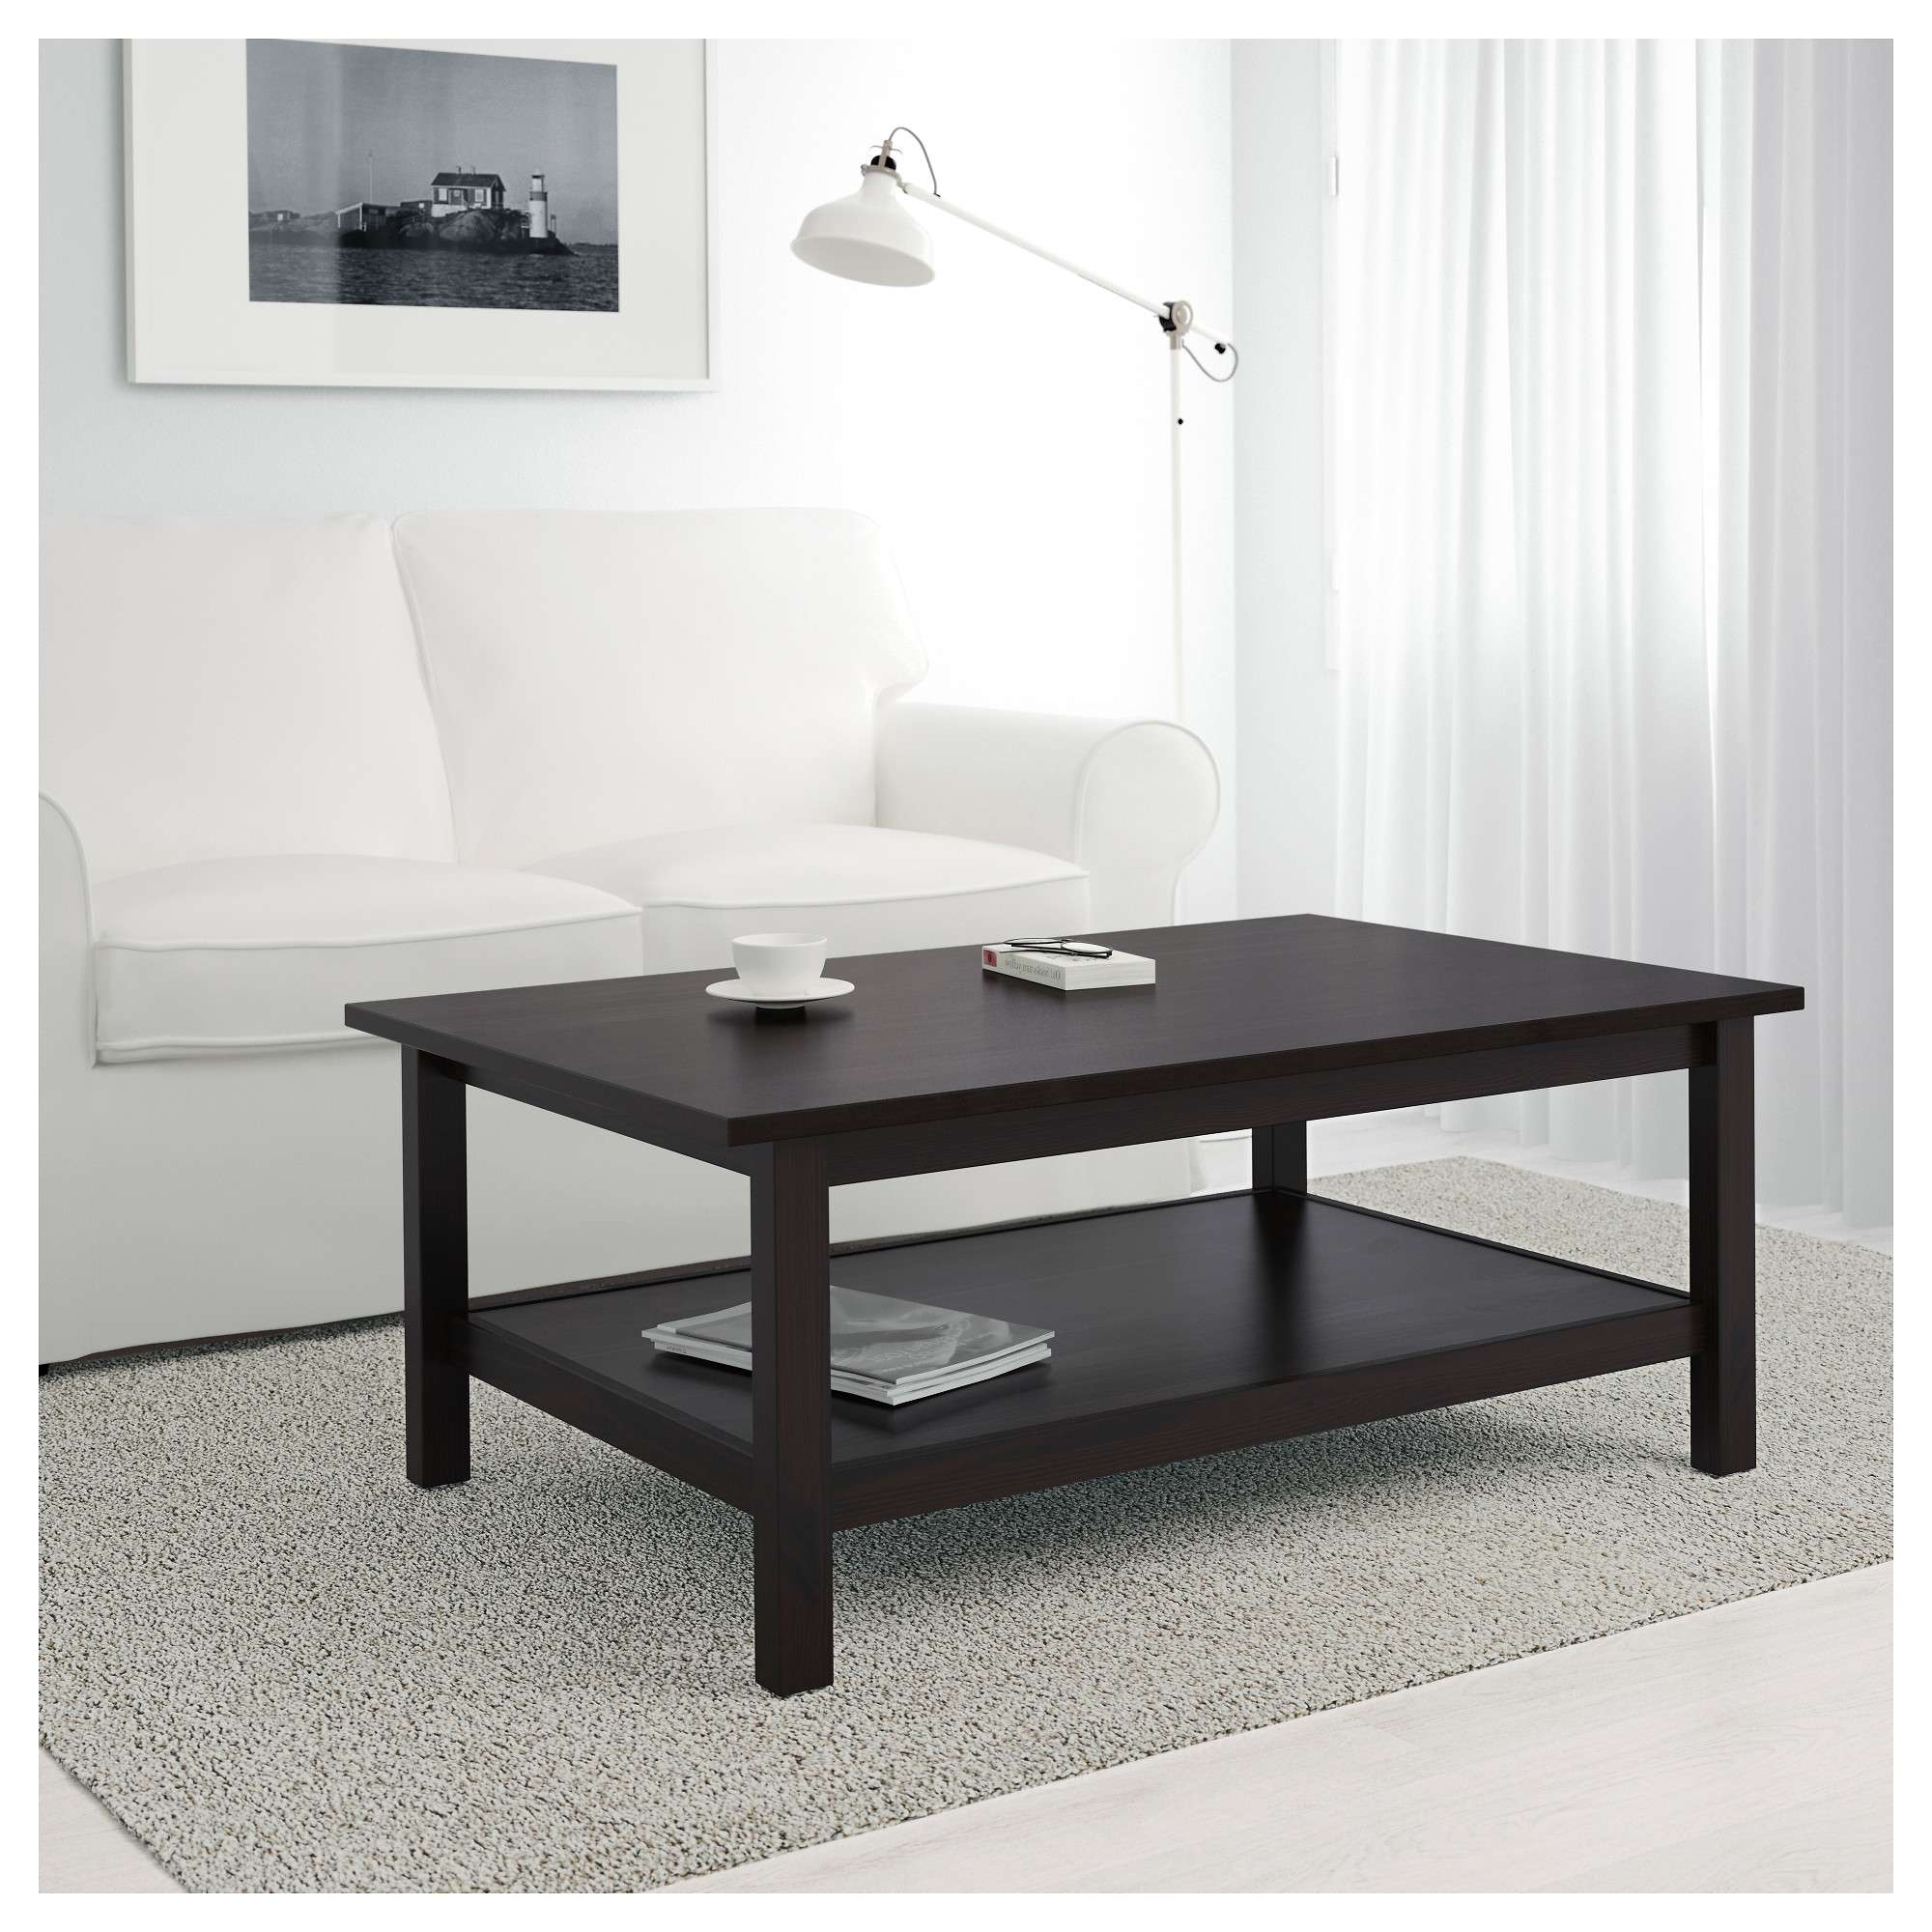 Hemnes Coffee Table – White Stain – Ikea Intended For Latest White And Brown Coffee Tables (View 10 of 20)